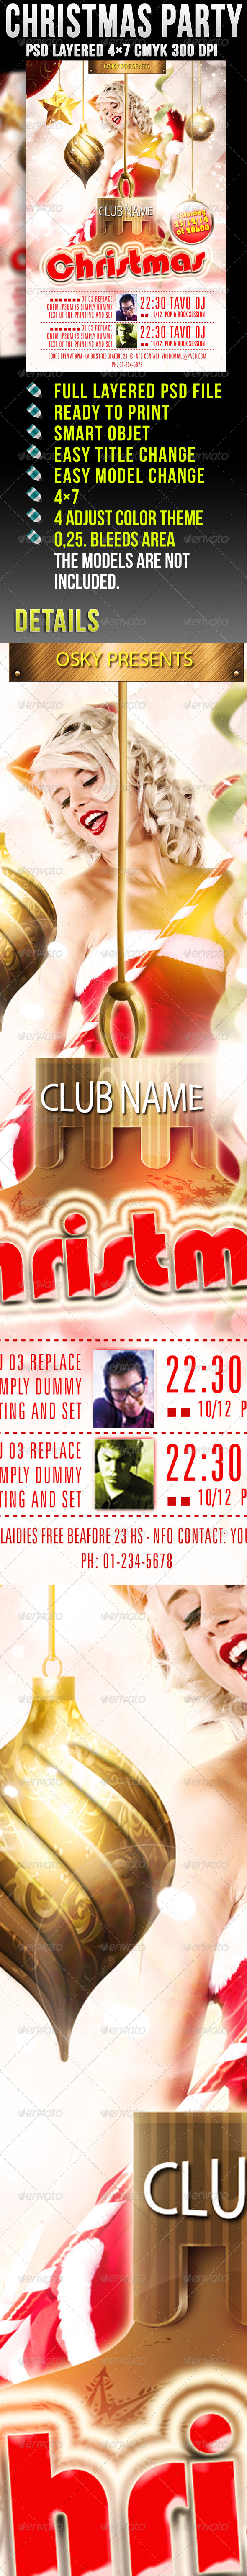 Graphic River Christmas Party Print Templates -  Flyers  Events  Clubs & Parties 921536